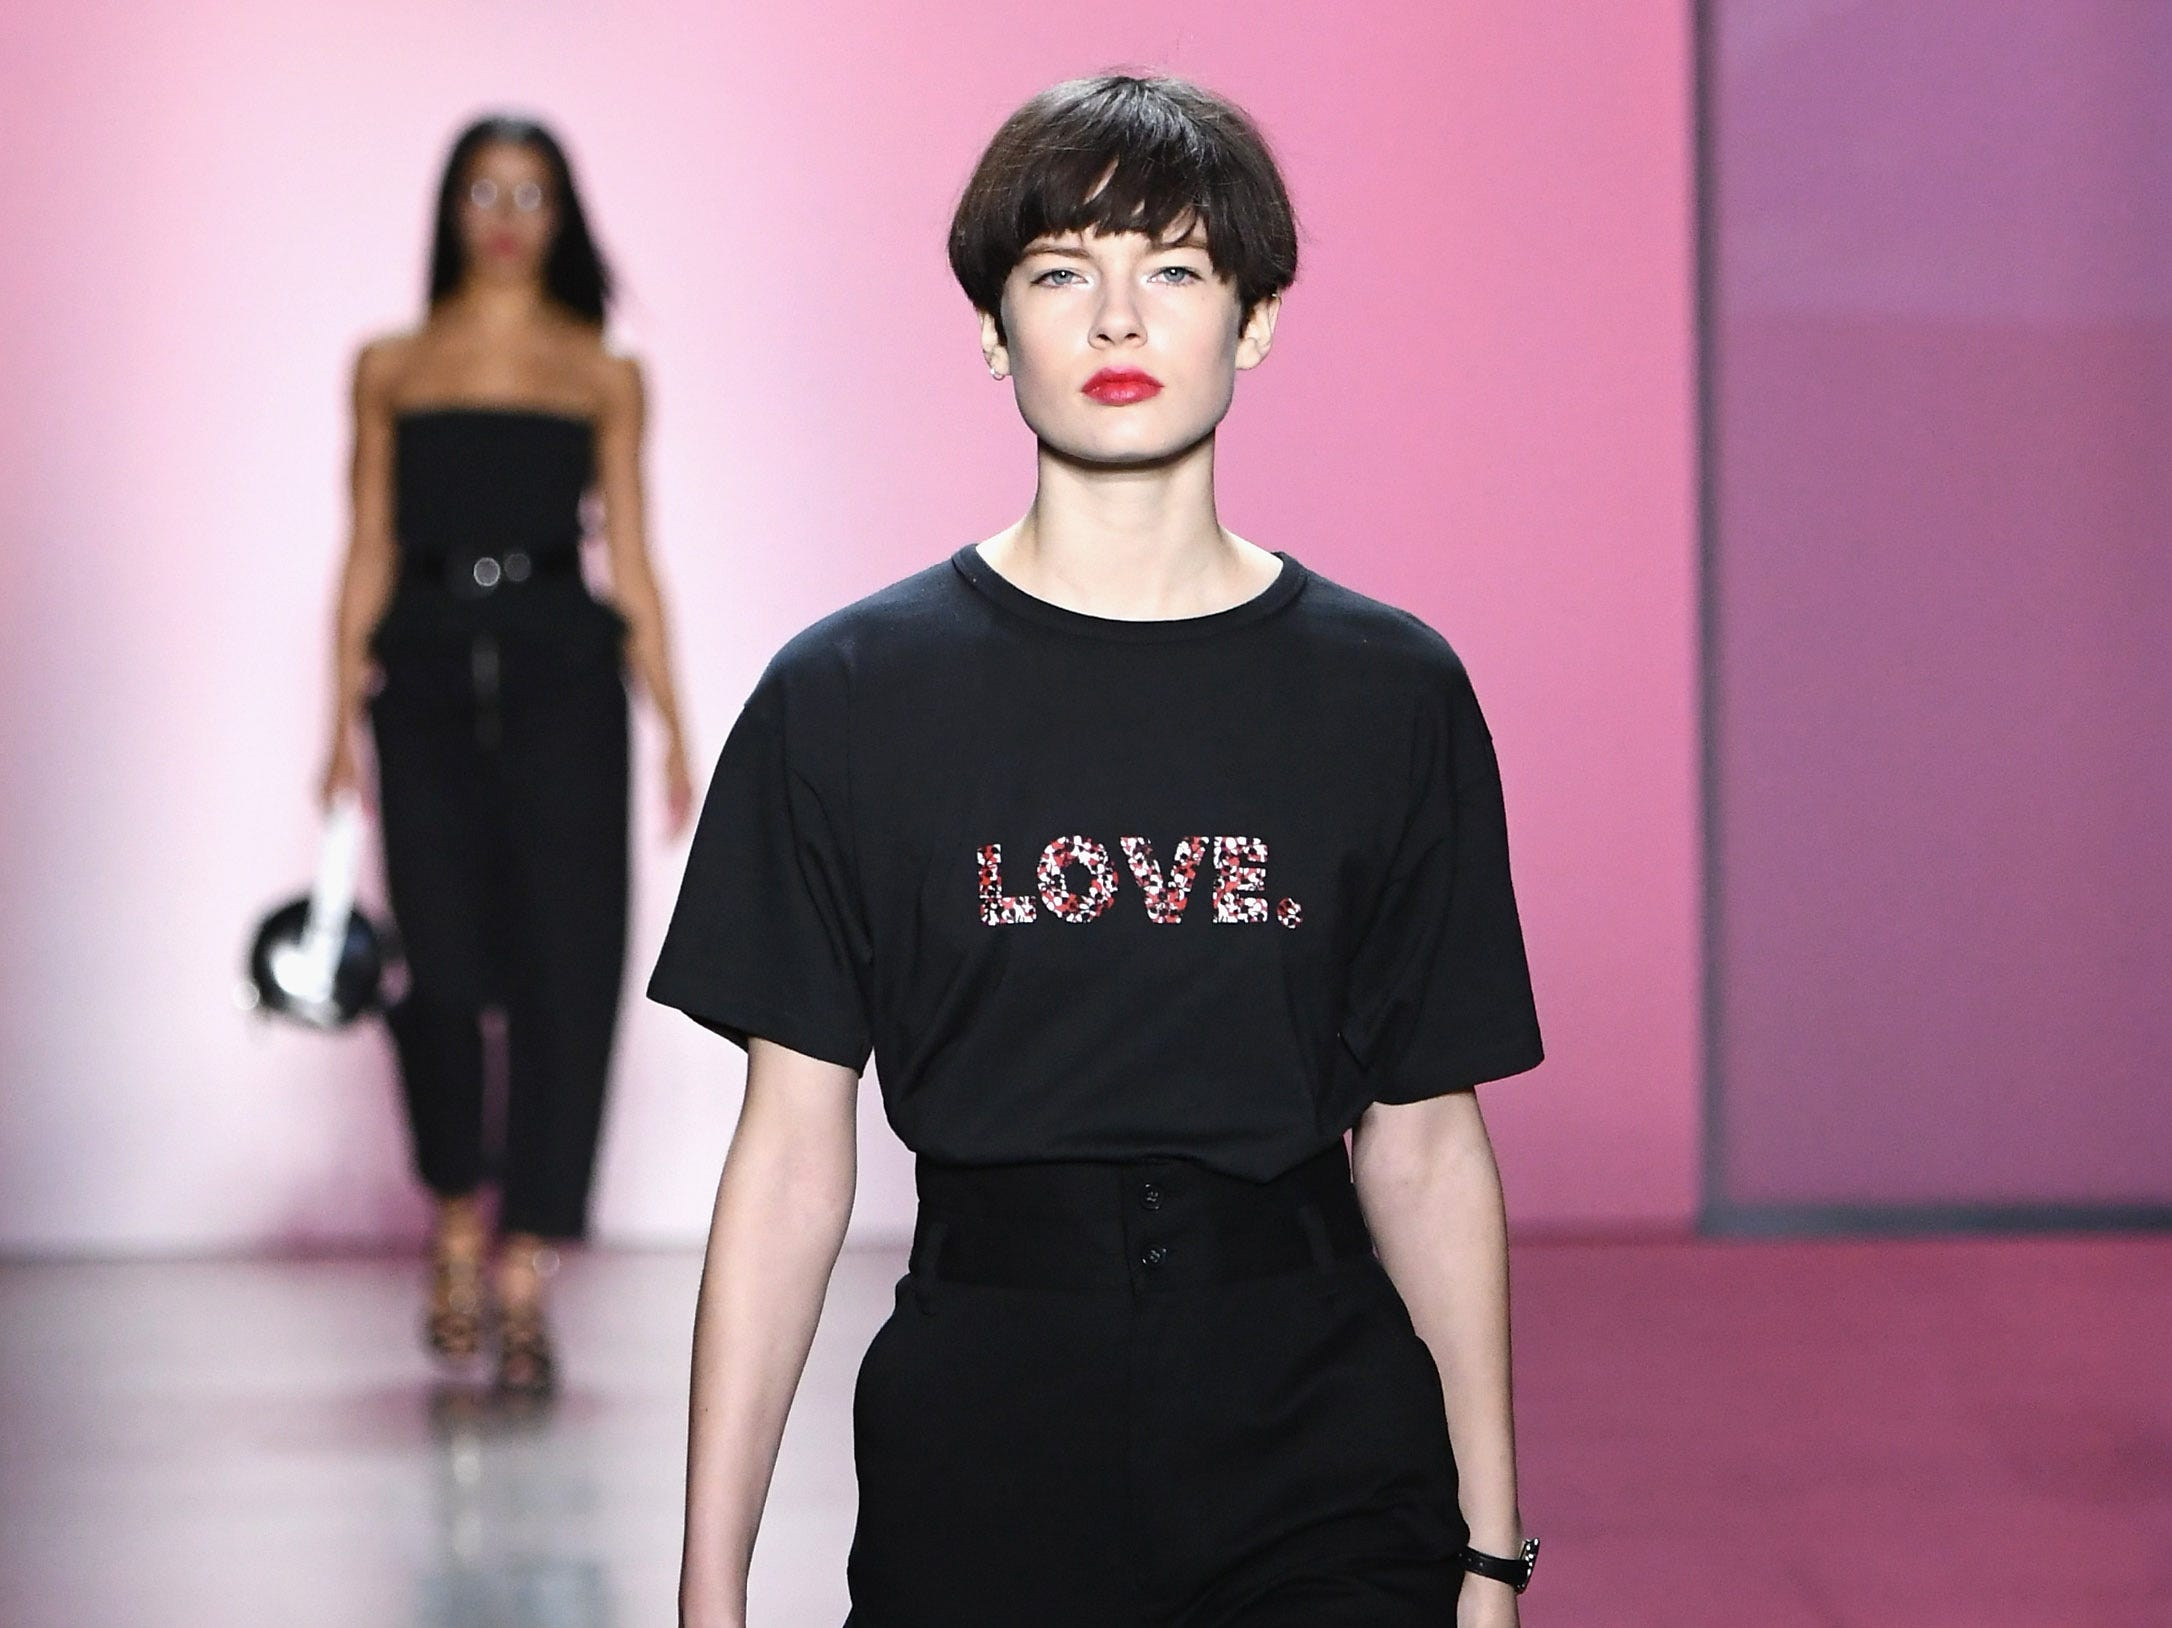 NEW YORK, NY - FEBRUARY 10:  A model walks the runway for the Rebecca Minkoff fashion show during New York Fashion Week: The Shows at Gallery I at Spring Studios on February 10, 2019 in New York City.  (Photo by Mike Coppola/Getty Images for NYFW: The Shows) ORG XMIT: 775290847 ORIG FILE ID: 1097085566